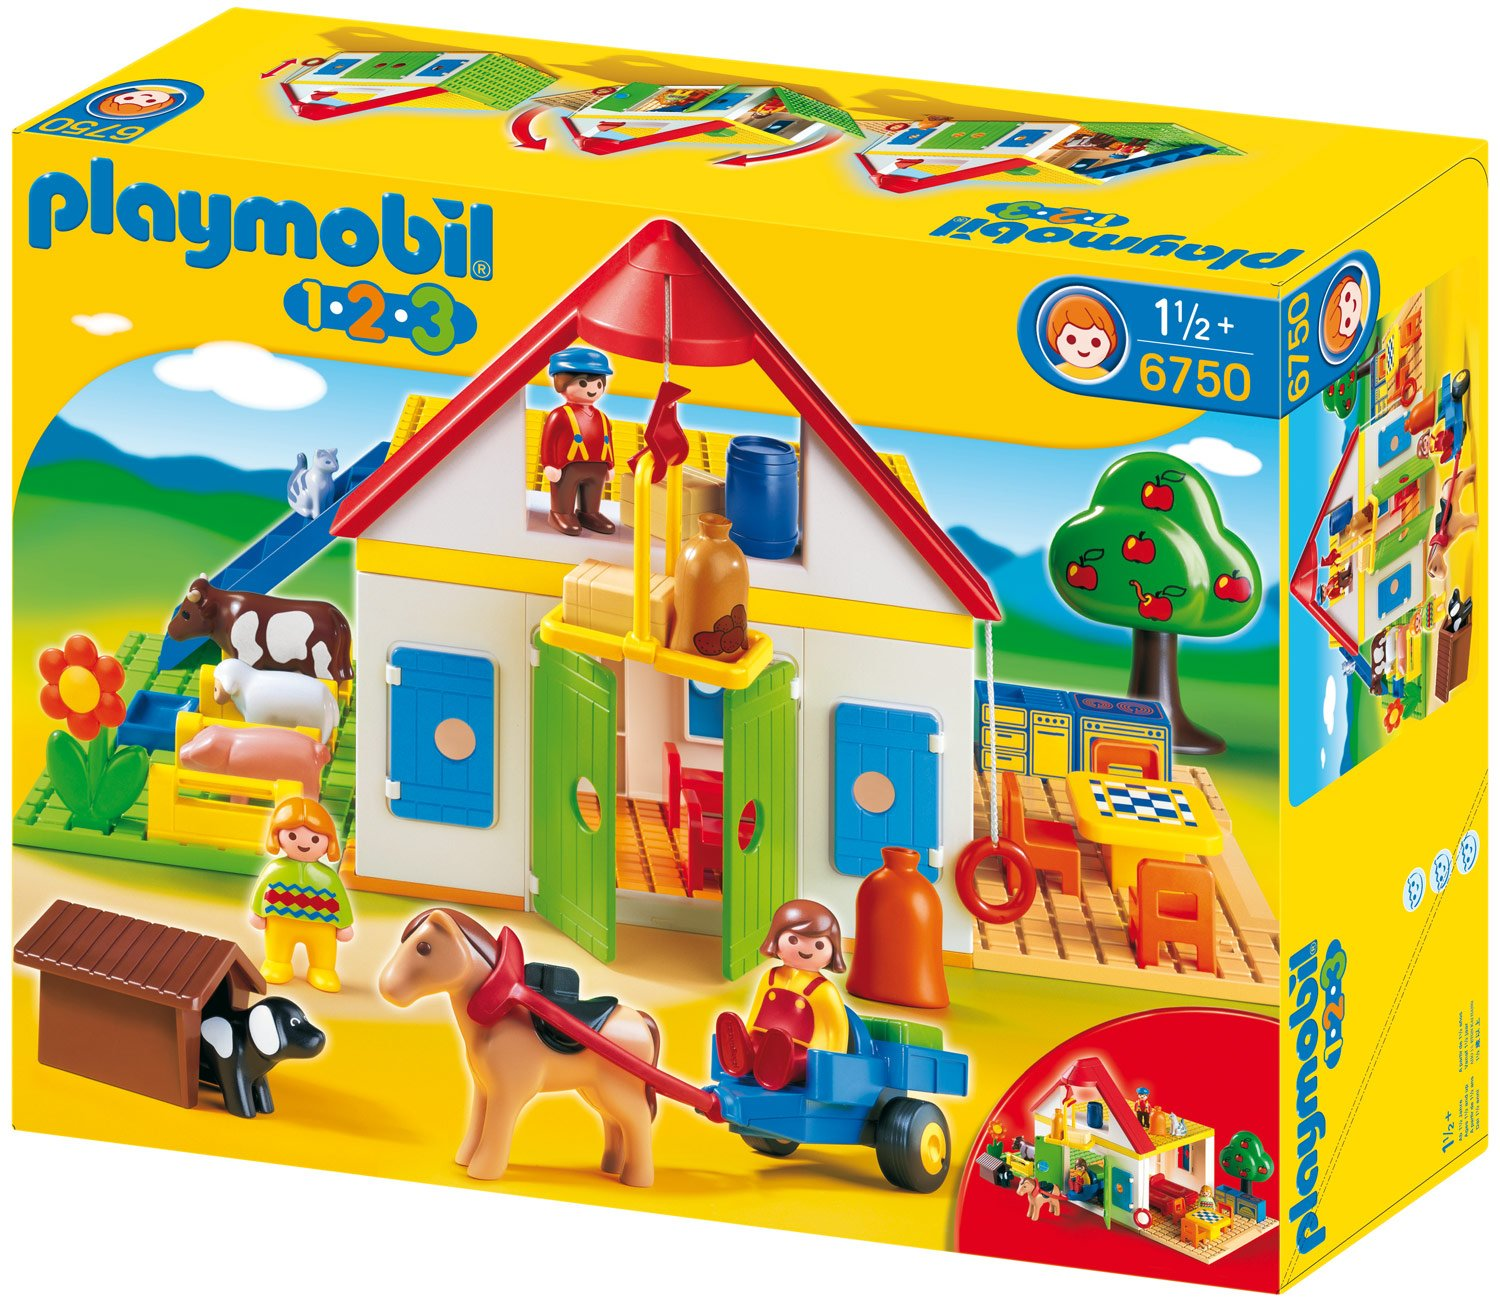 ferme playmobil 123. Black Bedroom Furniture Sets. Home Design Ideas